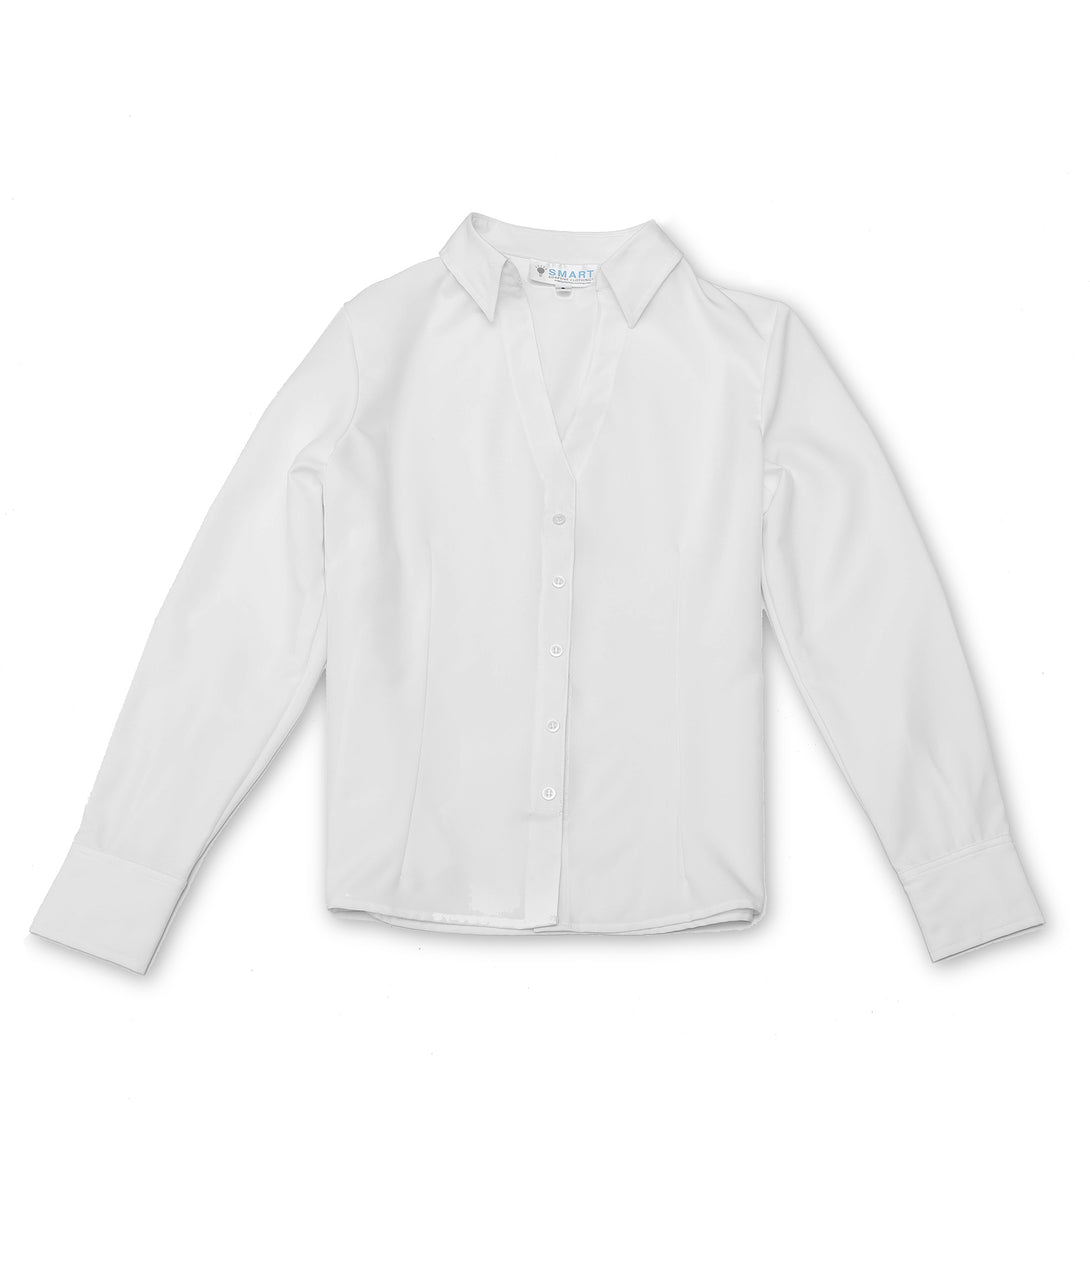 The Rose Adaptive Blouse By Smart Adaptive with Velcro Closures